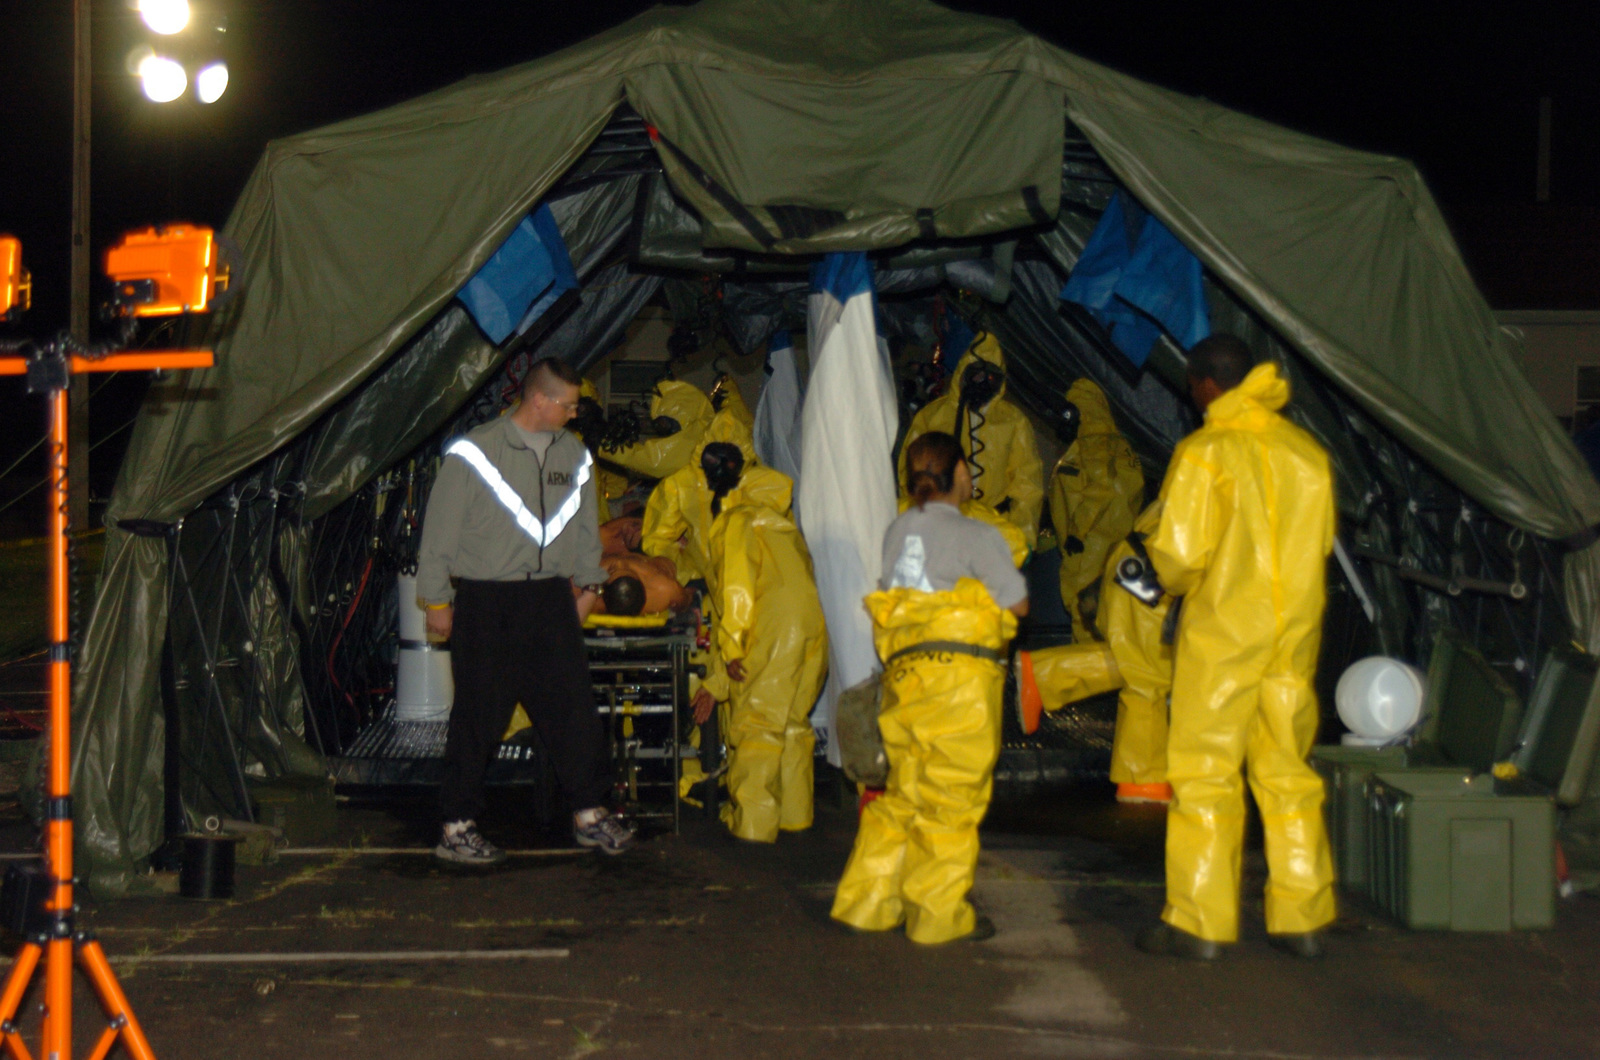 Elements from the Army Reserve 357th, 366th, and 401st Chemical Companies conduct decontamination proceedures for members of their recon companies who just returned from the chemical contaminated area.  This is one of many activities in support of Operation Red Dragon, a joint civilian-military exercise to test coordinated response to a simulated nuclear and chemical bomb attack at Fort McCoy, Wis., from June 23, 2005 to June 24, 2005.  (U.S. Army photo by STAFF SGT. Brian D. Lehnhardt) (Released)